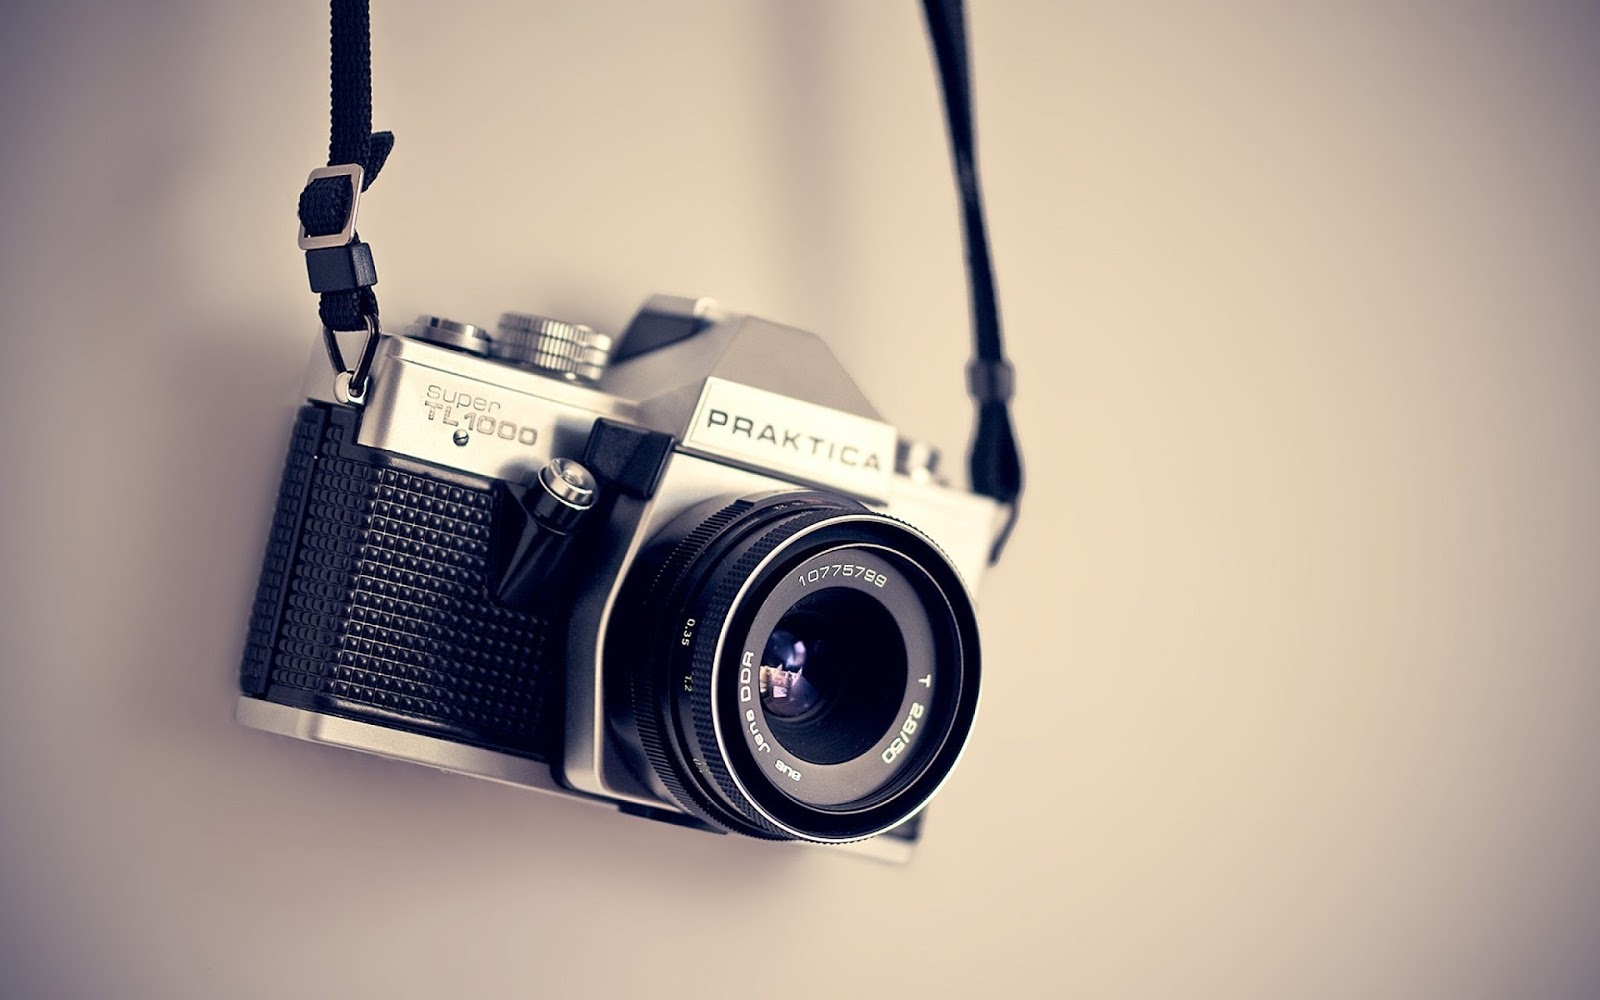 Camera Vintage Android : Top tips for taking good looking photos android photography tips